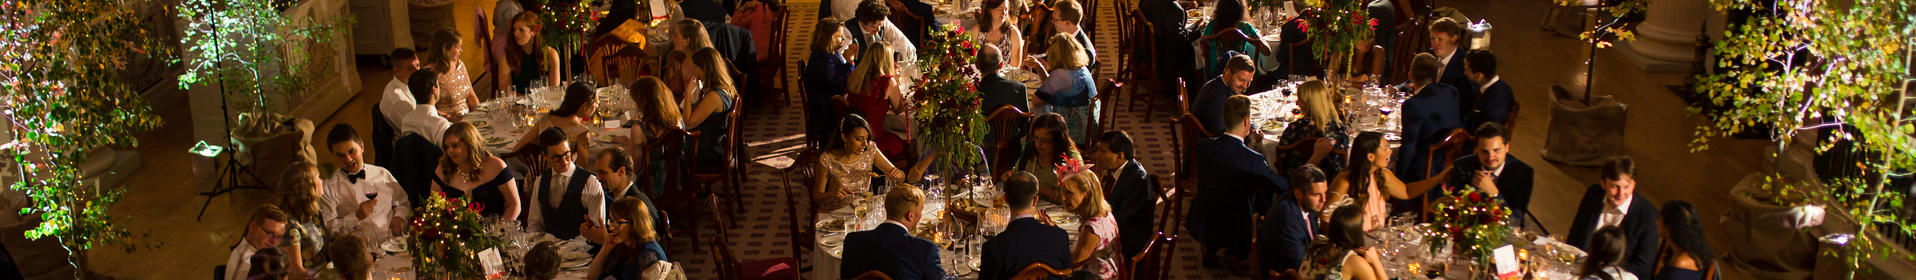 Wedding reception in the Pump Room, Bhavesh Chauhan